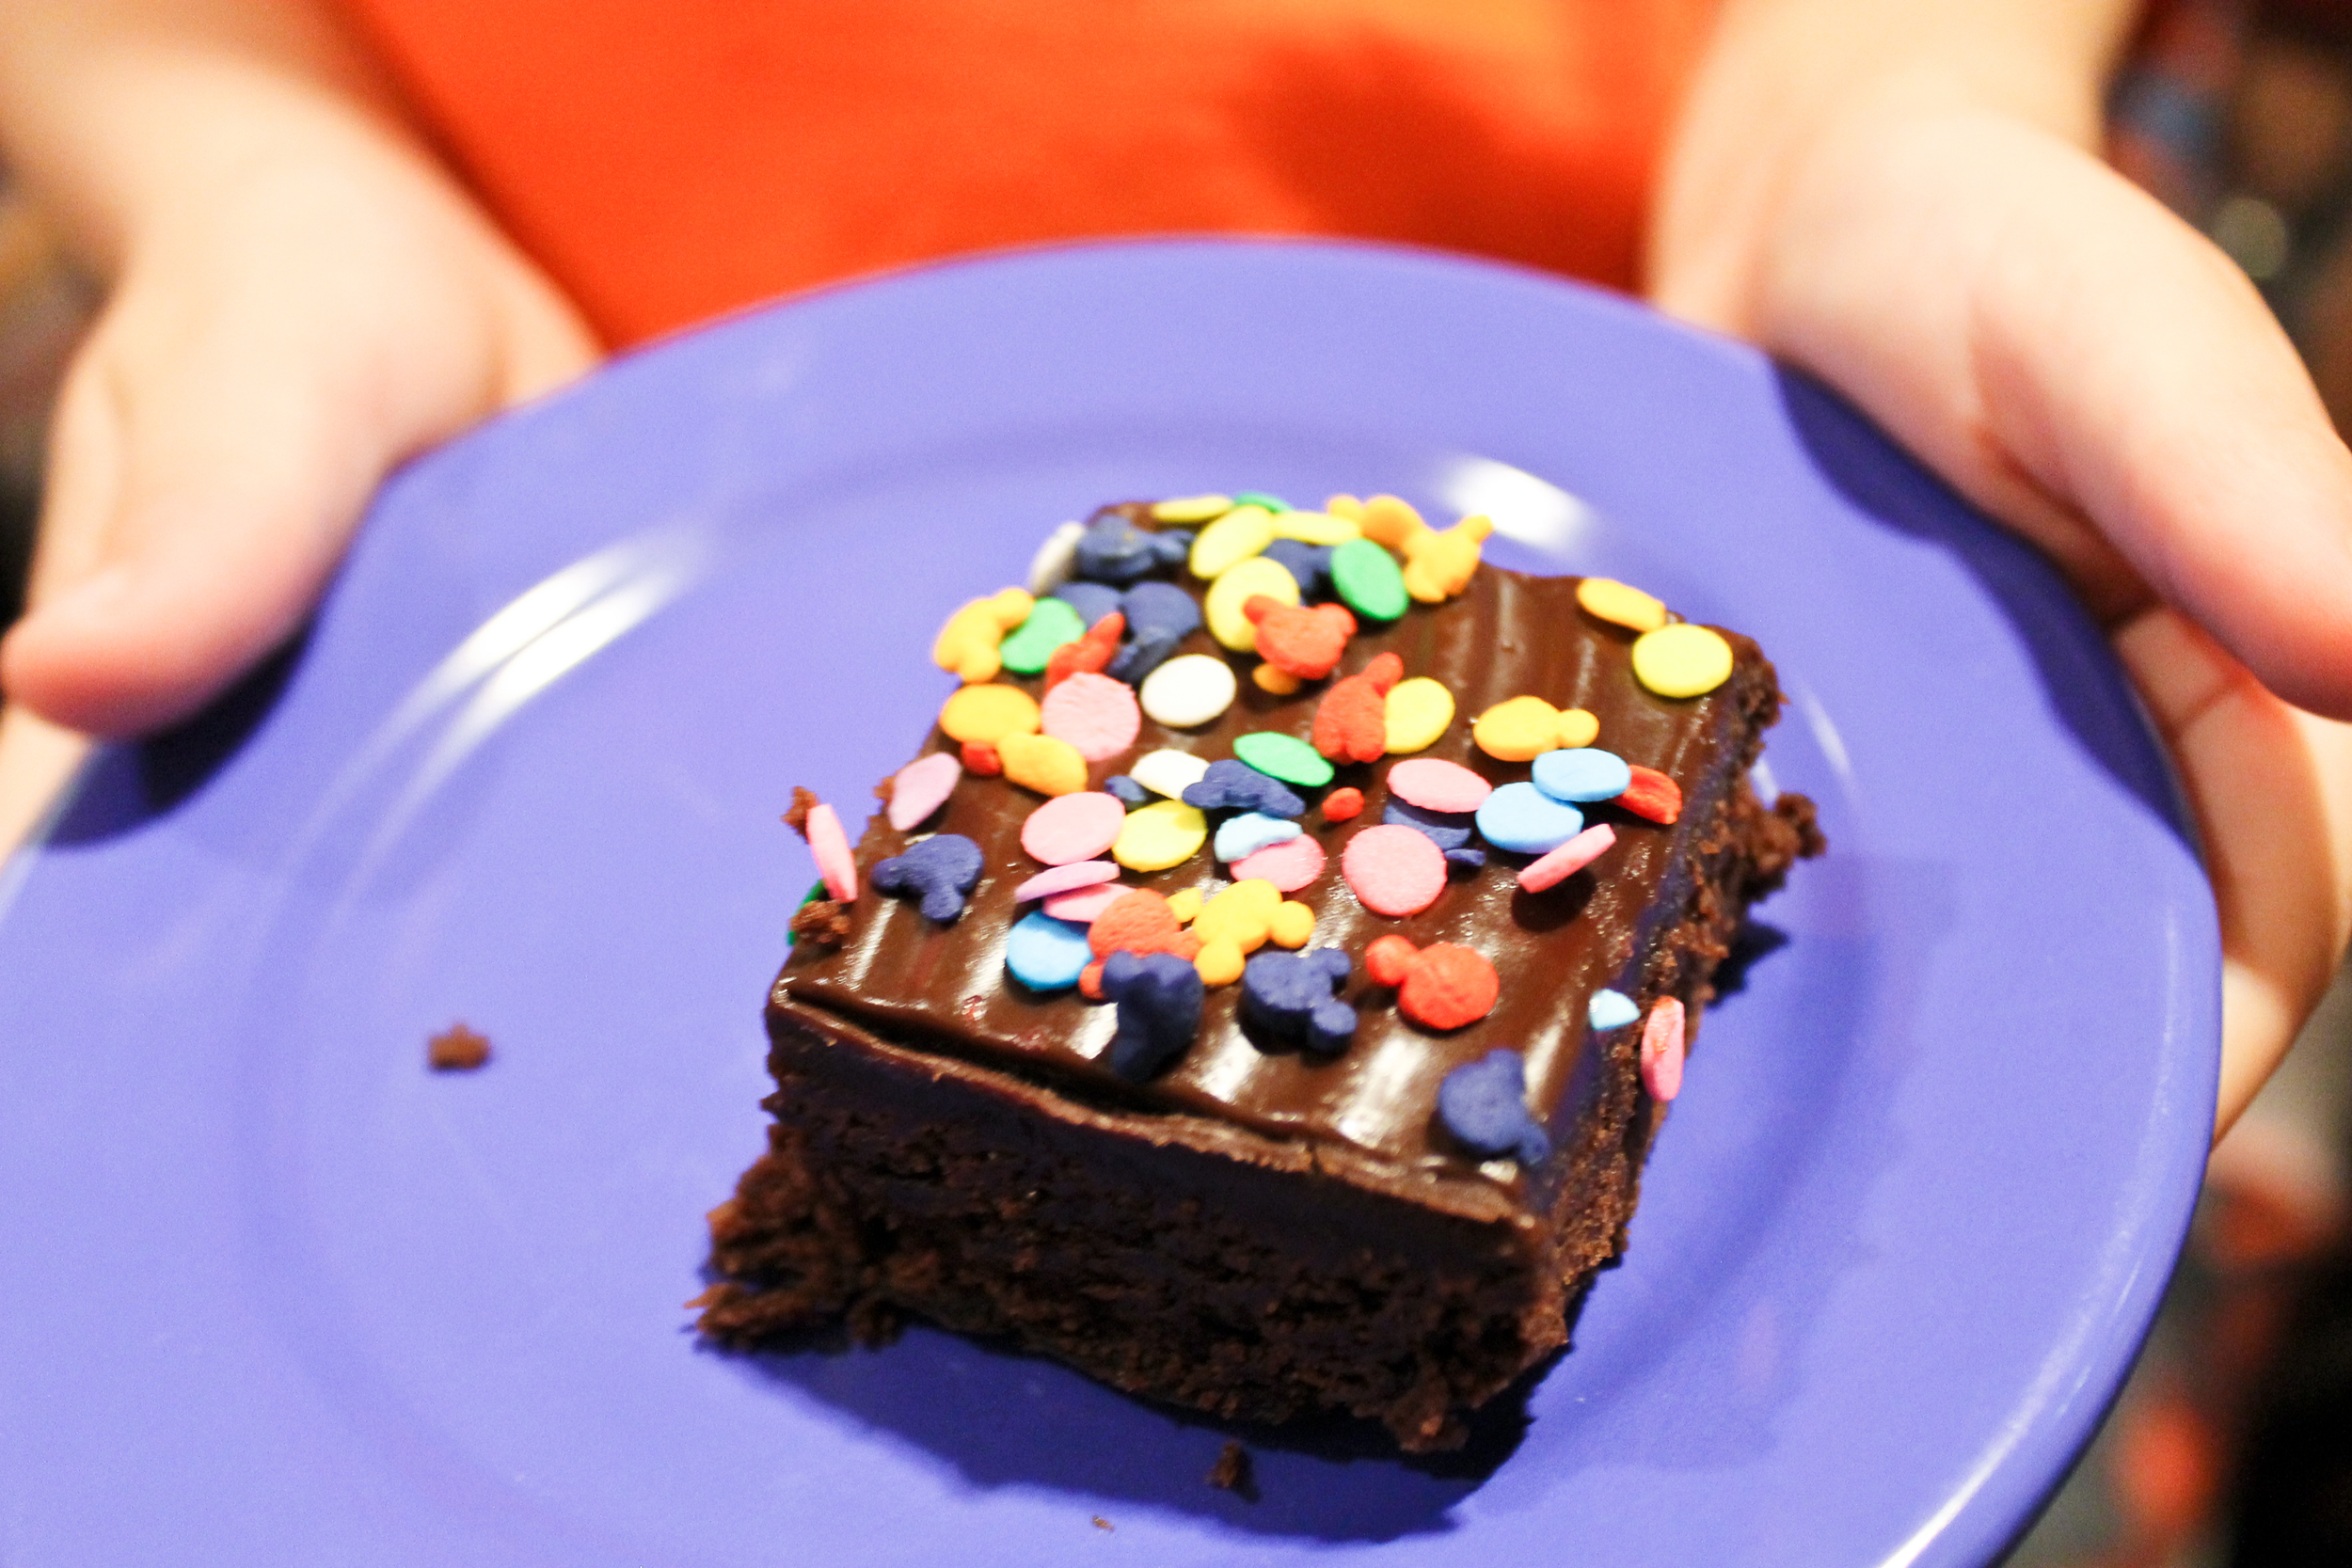 Plus, who doesn't love brownies for breakfast??